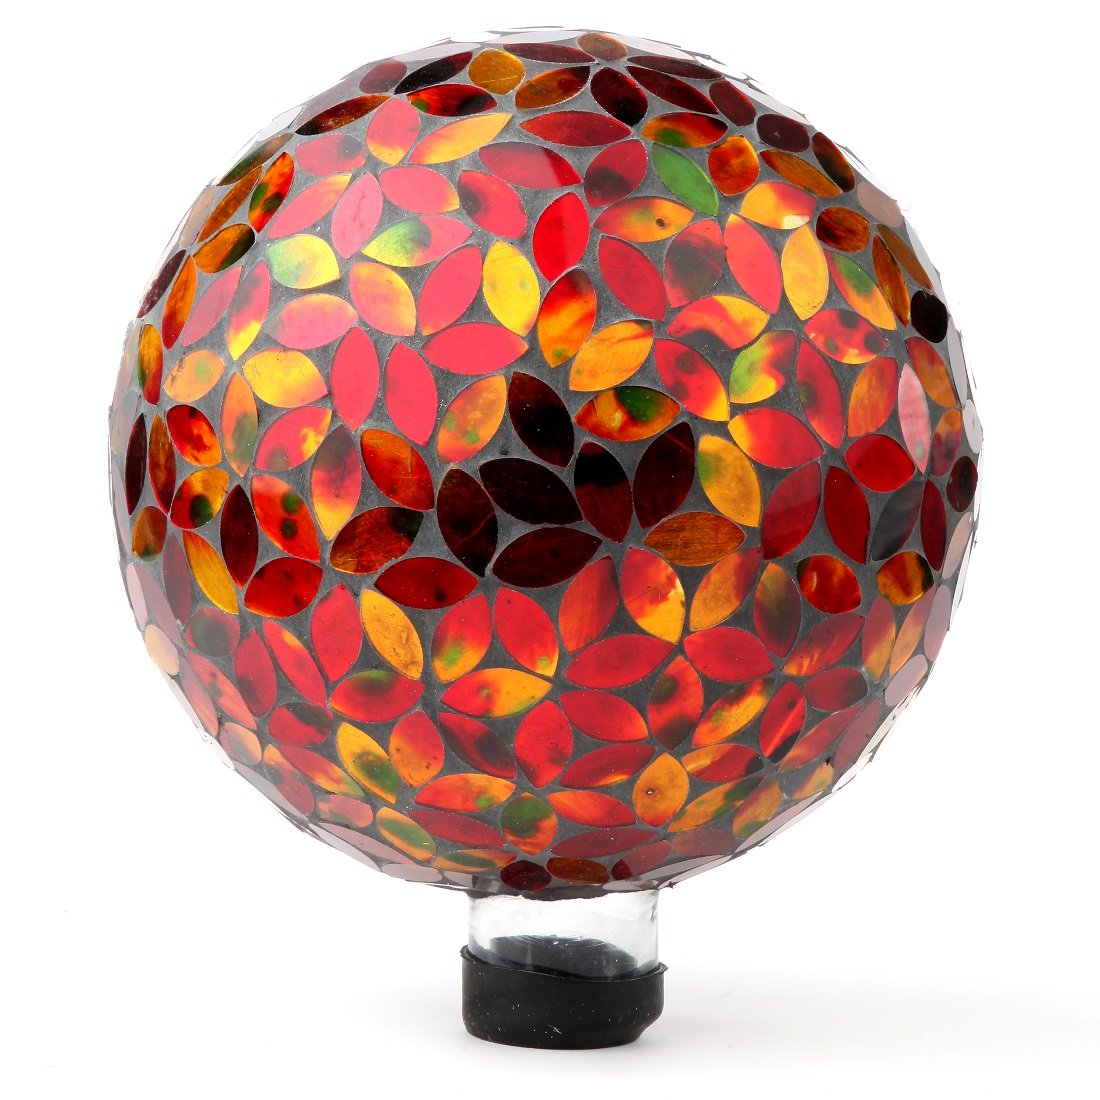 "Lily's Home Glass Gazing Ball | Holographic Effect, Stunning Rainbow Color Reflection Effect, Mosaic Design, Red & Gold Petal Shape Mirrors, Attracts Good Fortune, Lovely Centerpiece, 10"" Dia."